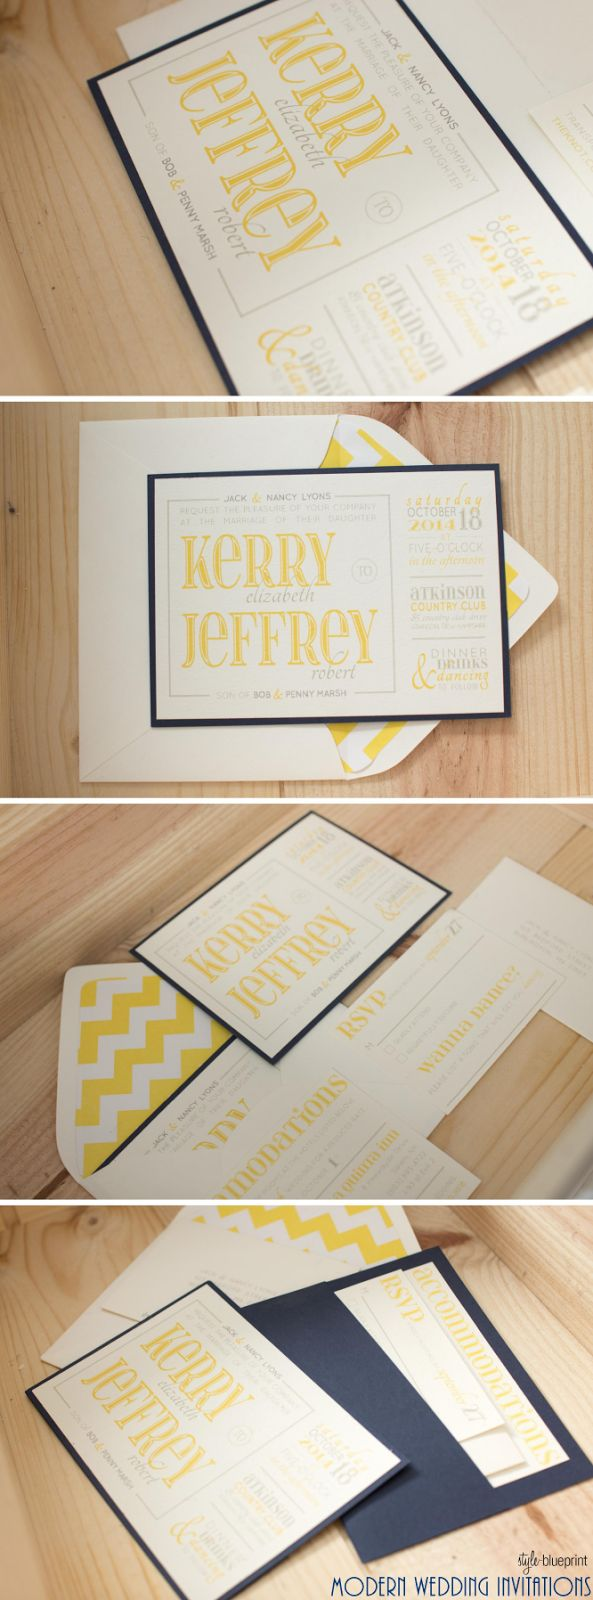 Kerry and Jeff's Wedding Invitations  //  modern wedding invitations //  navy blue, yellow and grey